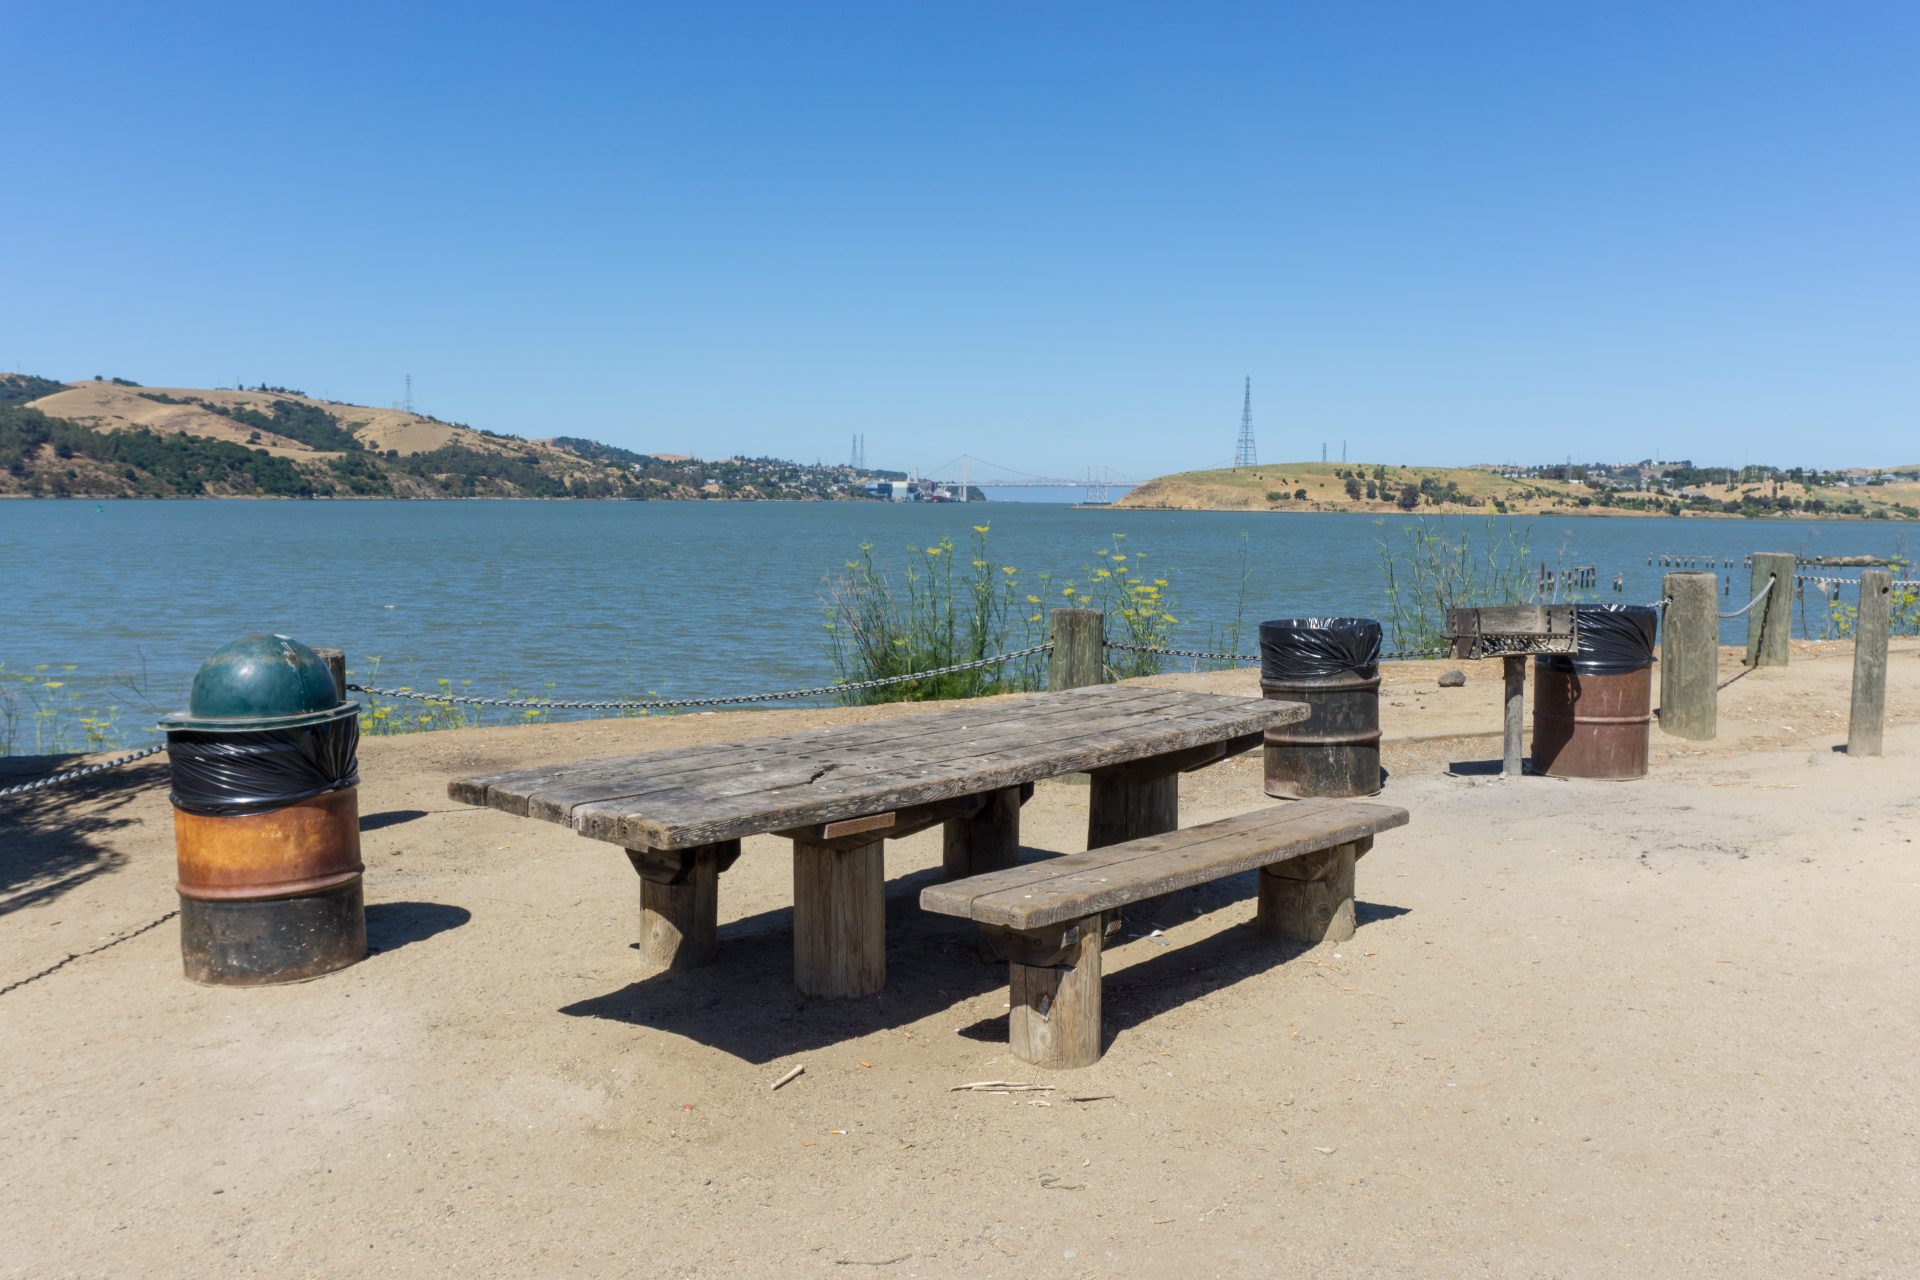 wooden picnic bench with large accessible overhang, on sand/dirt base